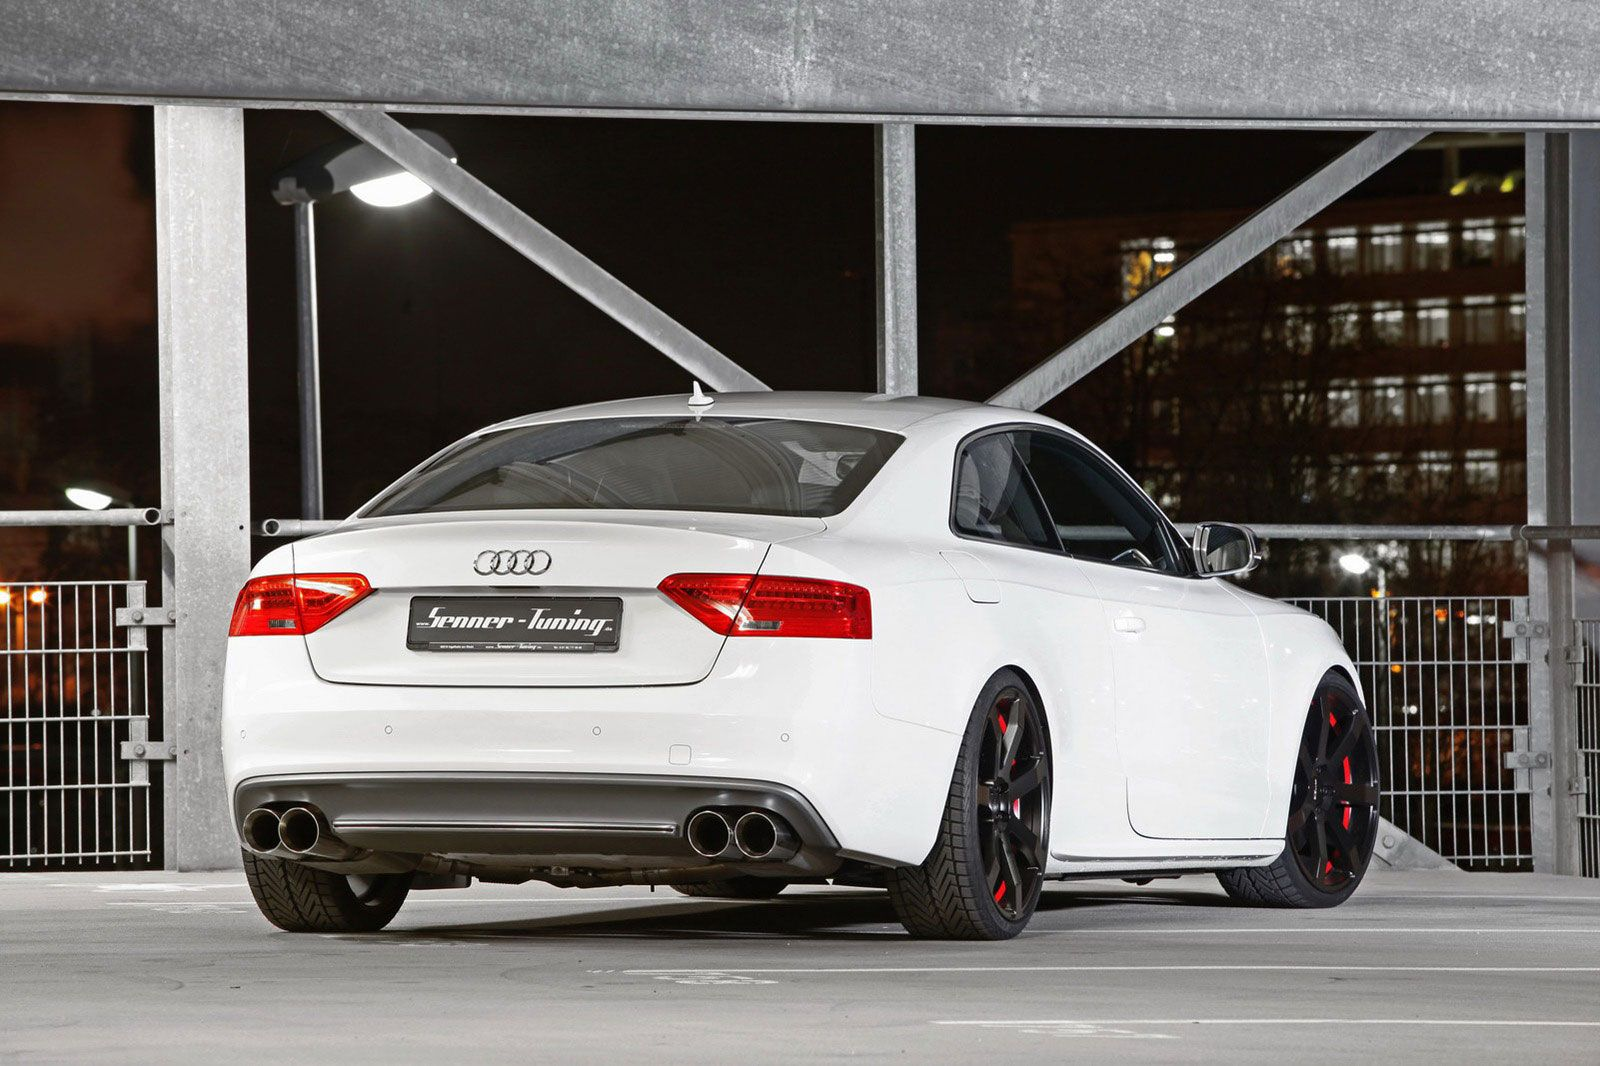 2012 Ibis White Audi S5 Facelift With 377 Horsepower By Senner Tuning 2012 Senner Tuning Audi S5 Facelift Rear Angle View Audi S5 White Audi Audi